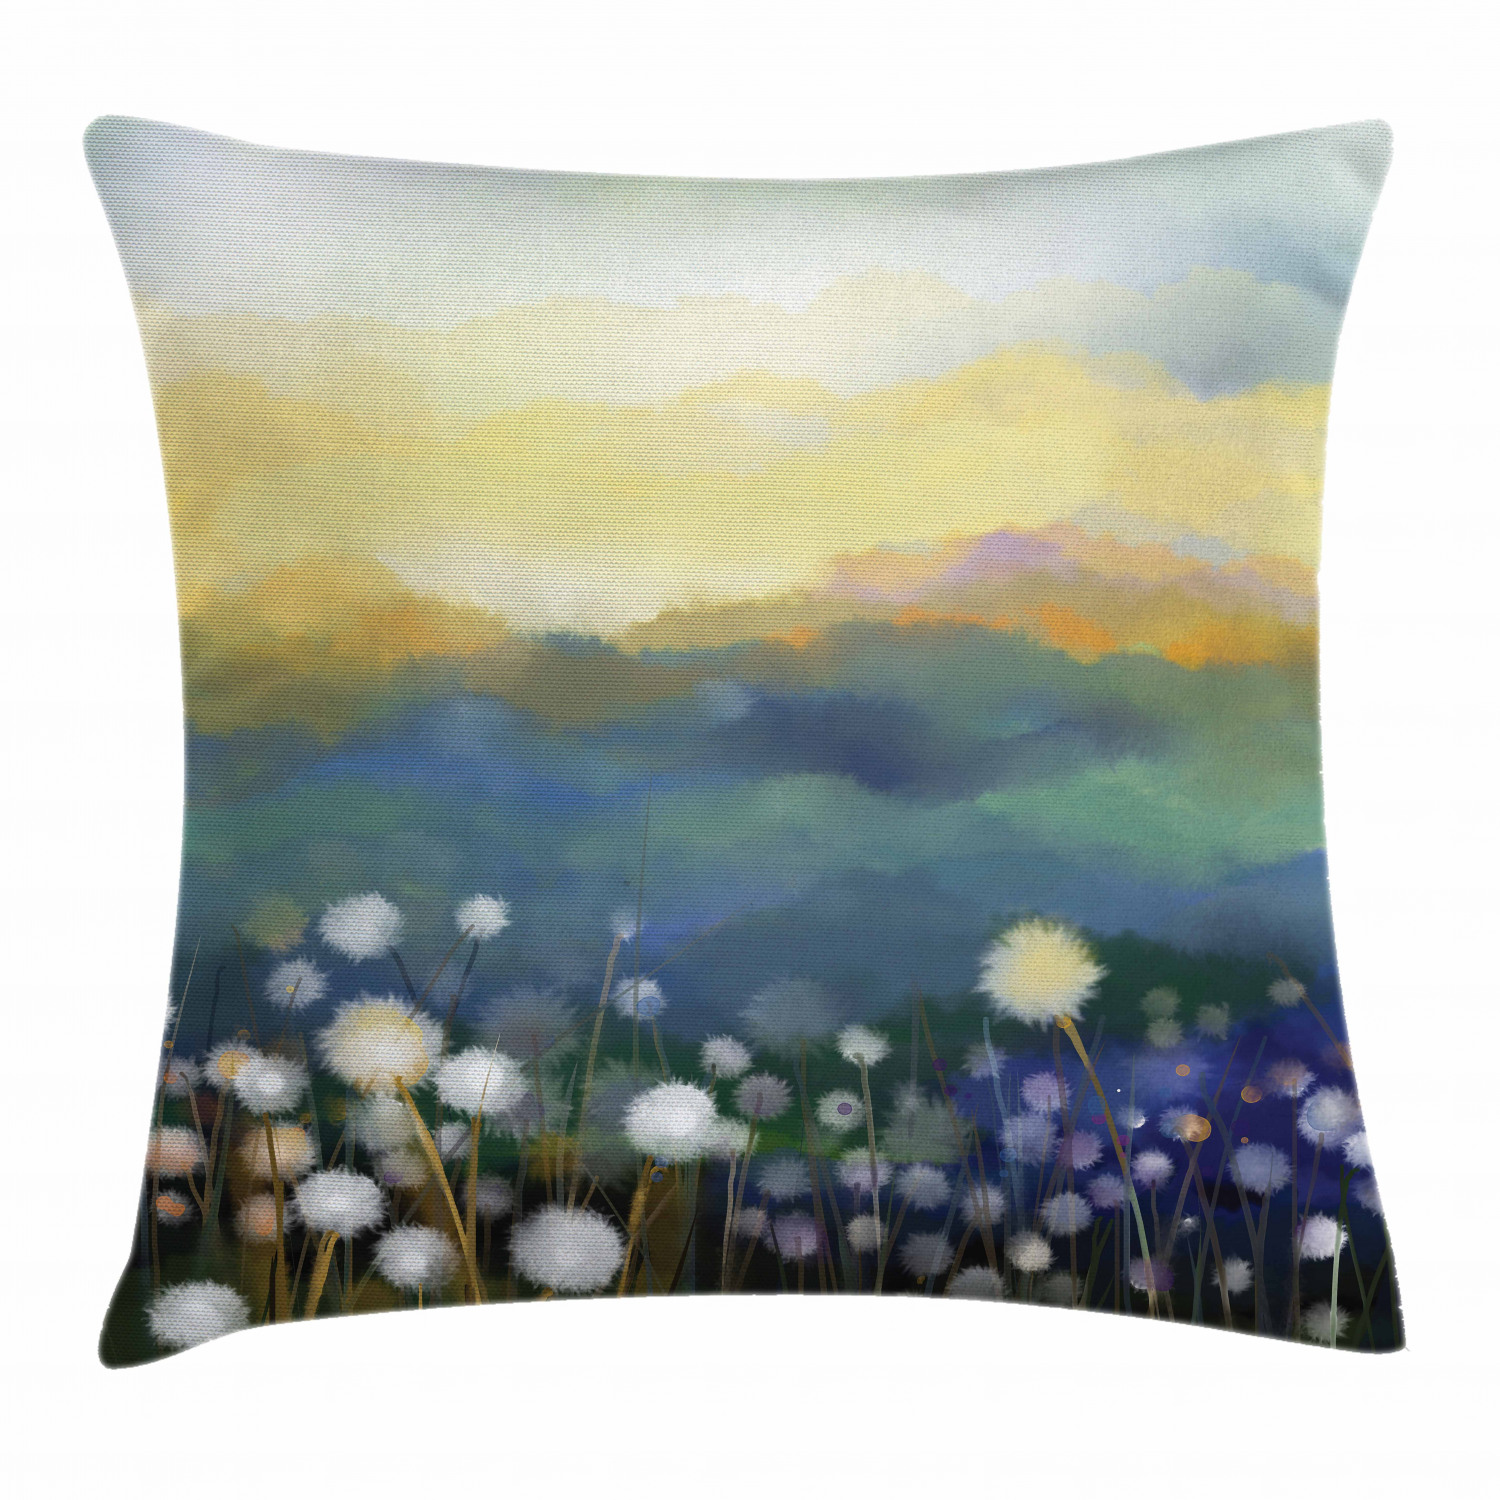 Dandelion Throw Pillow Cushion Cover Oil Painting Effect Floral Scene And Mountains Flowers In Meadows Spring Theme Decorative Square Accent Pillow Case 20 X 20 Inches Multicolor By Ambesonne Walmart Com Walmart Com